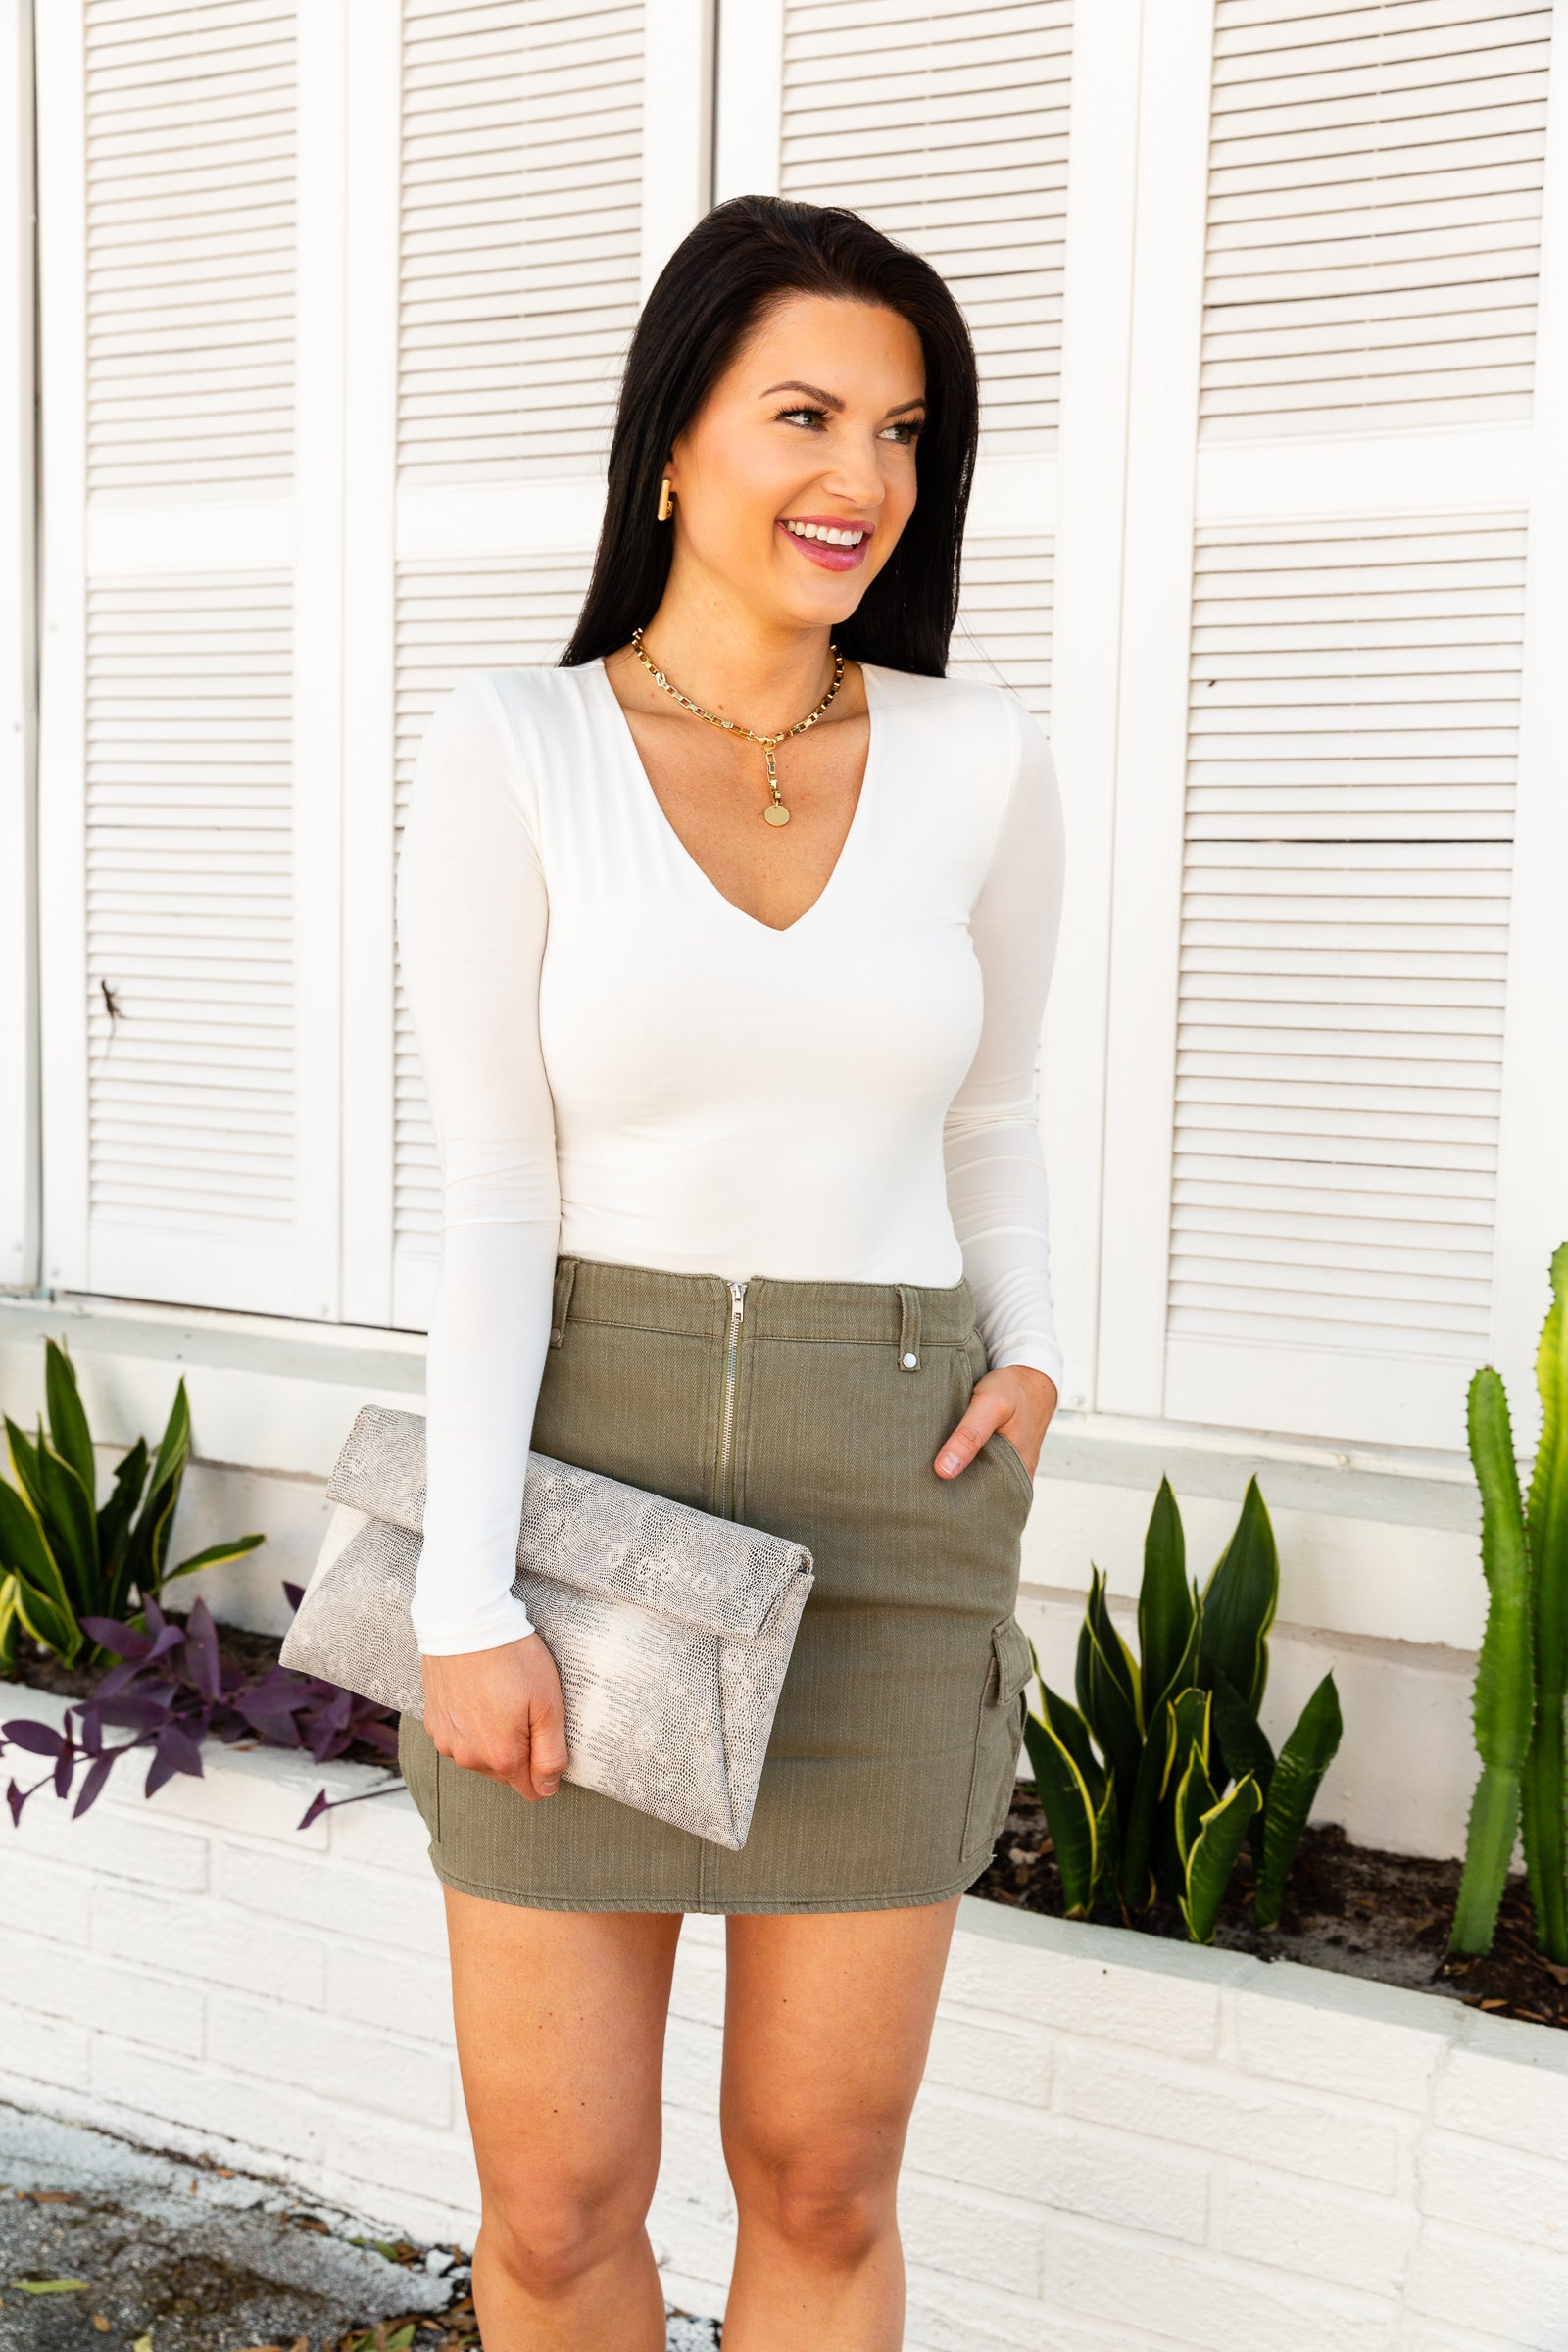 Fitted waistband with belt loops that leads to a zippered center detail on a paneled skirt with a hip-hugging silhouette with side pockets and flapped pockets at each side underneath.